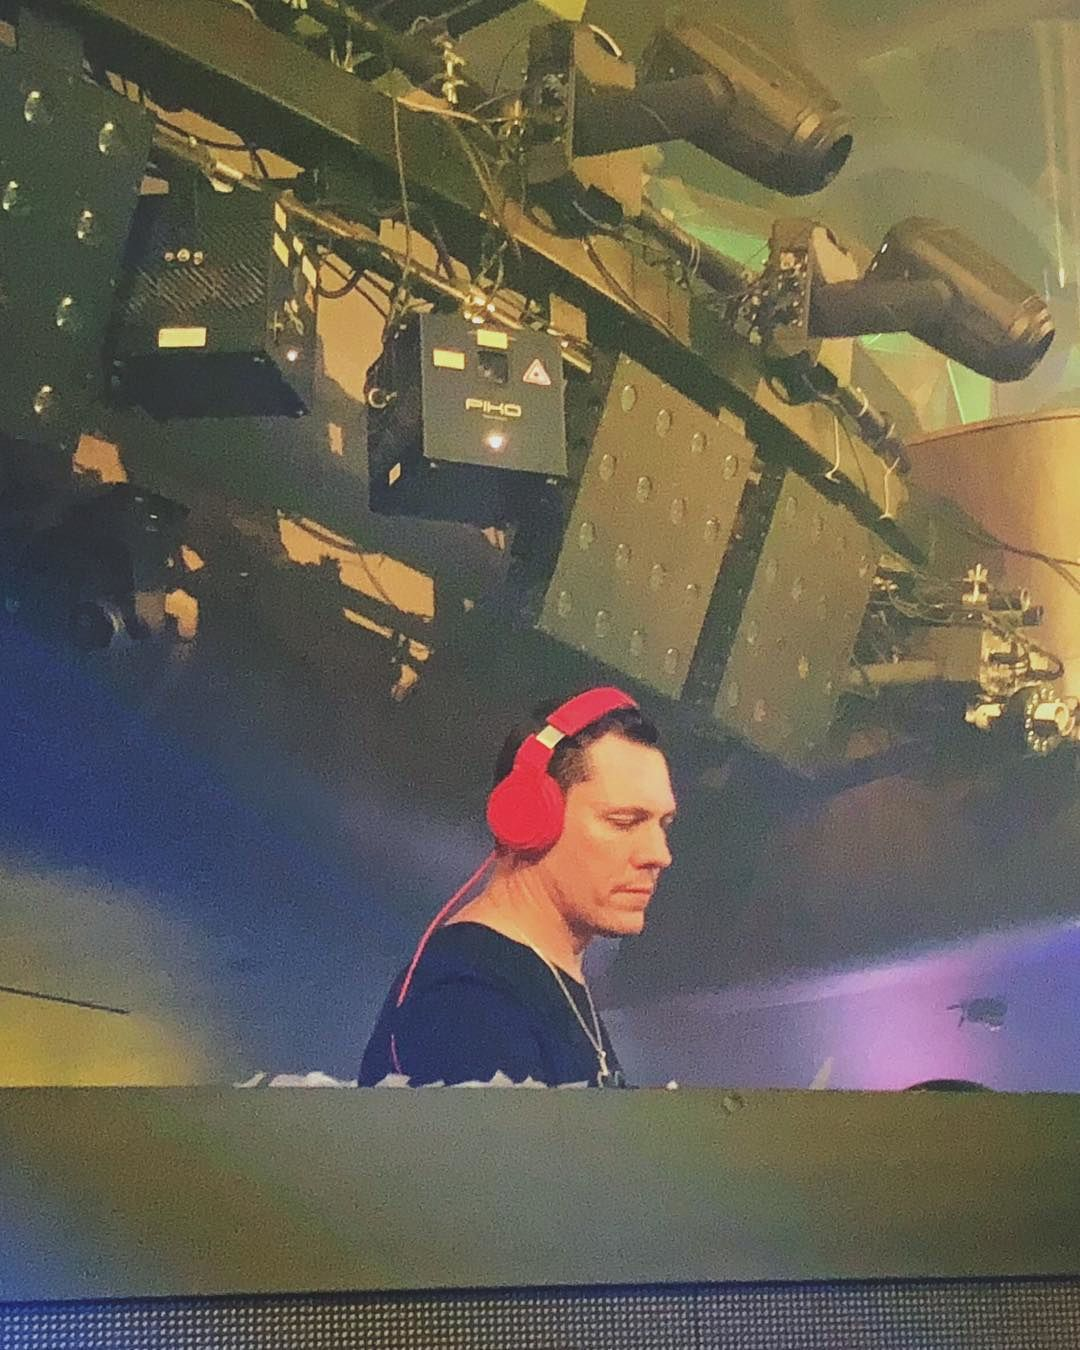 Tiësto photos | Hakkasan | Las Vegas, NV - December 30, 2017